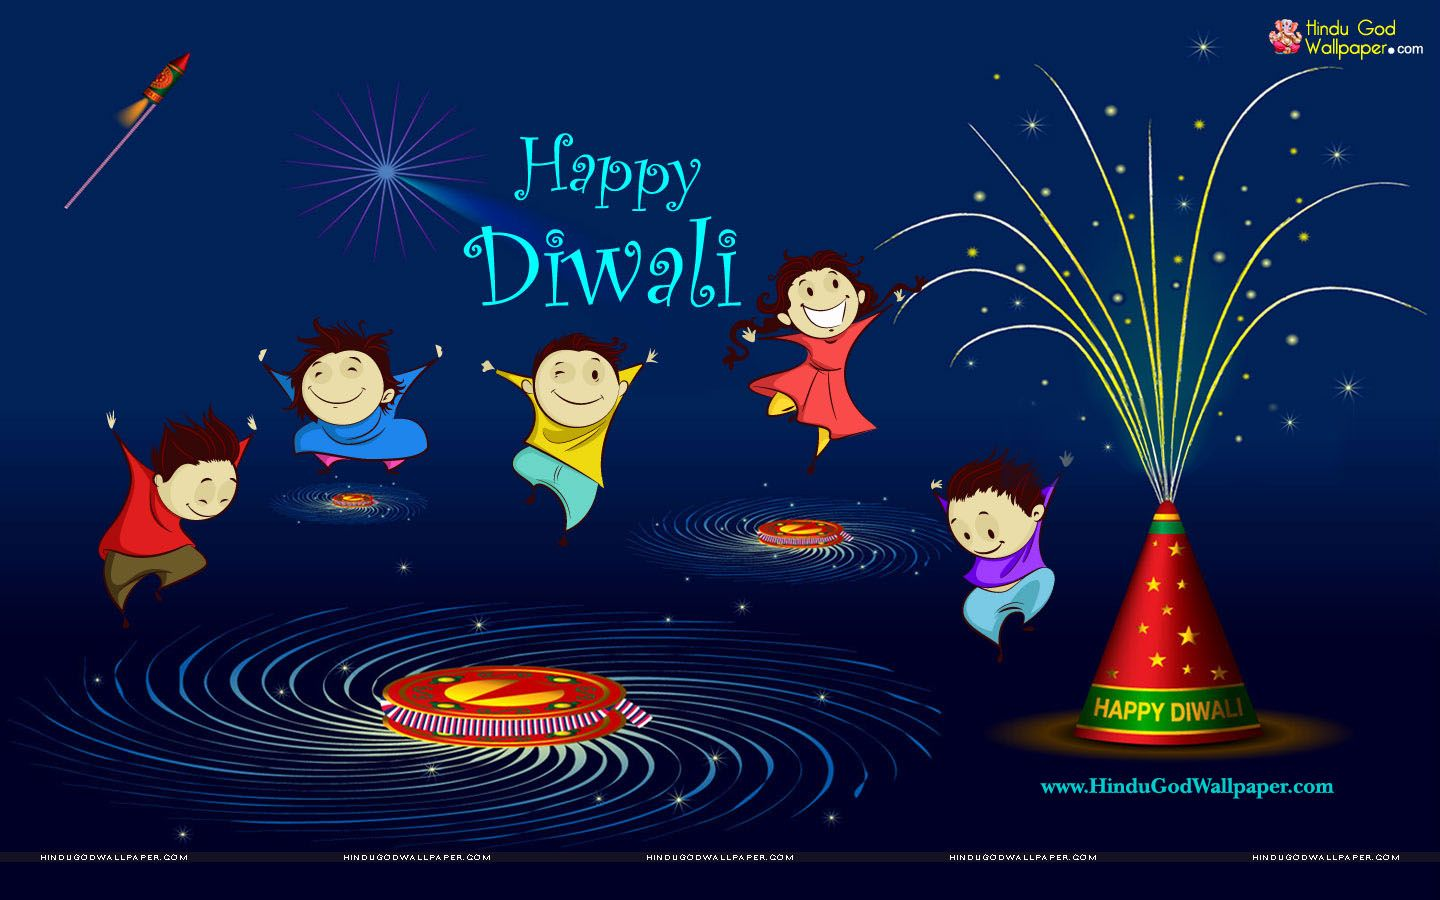 Funny Happy Diwali Wallpapers Hd Free Download Diwali Wallpapers